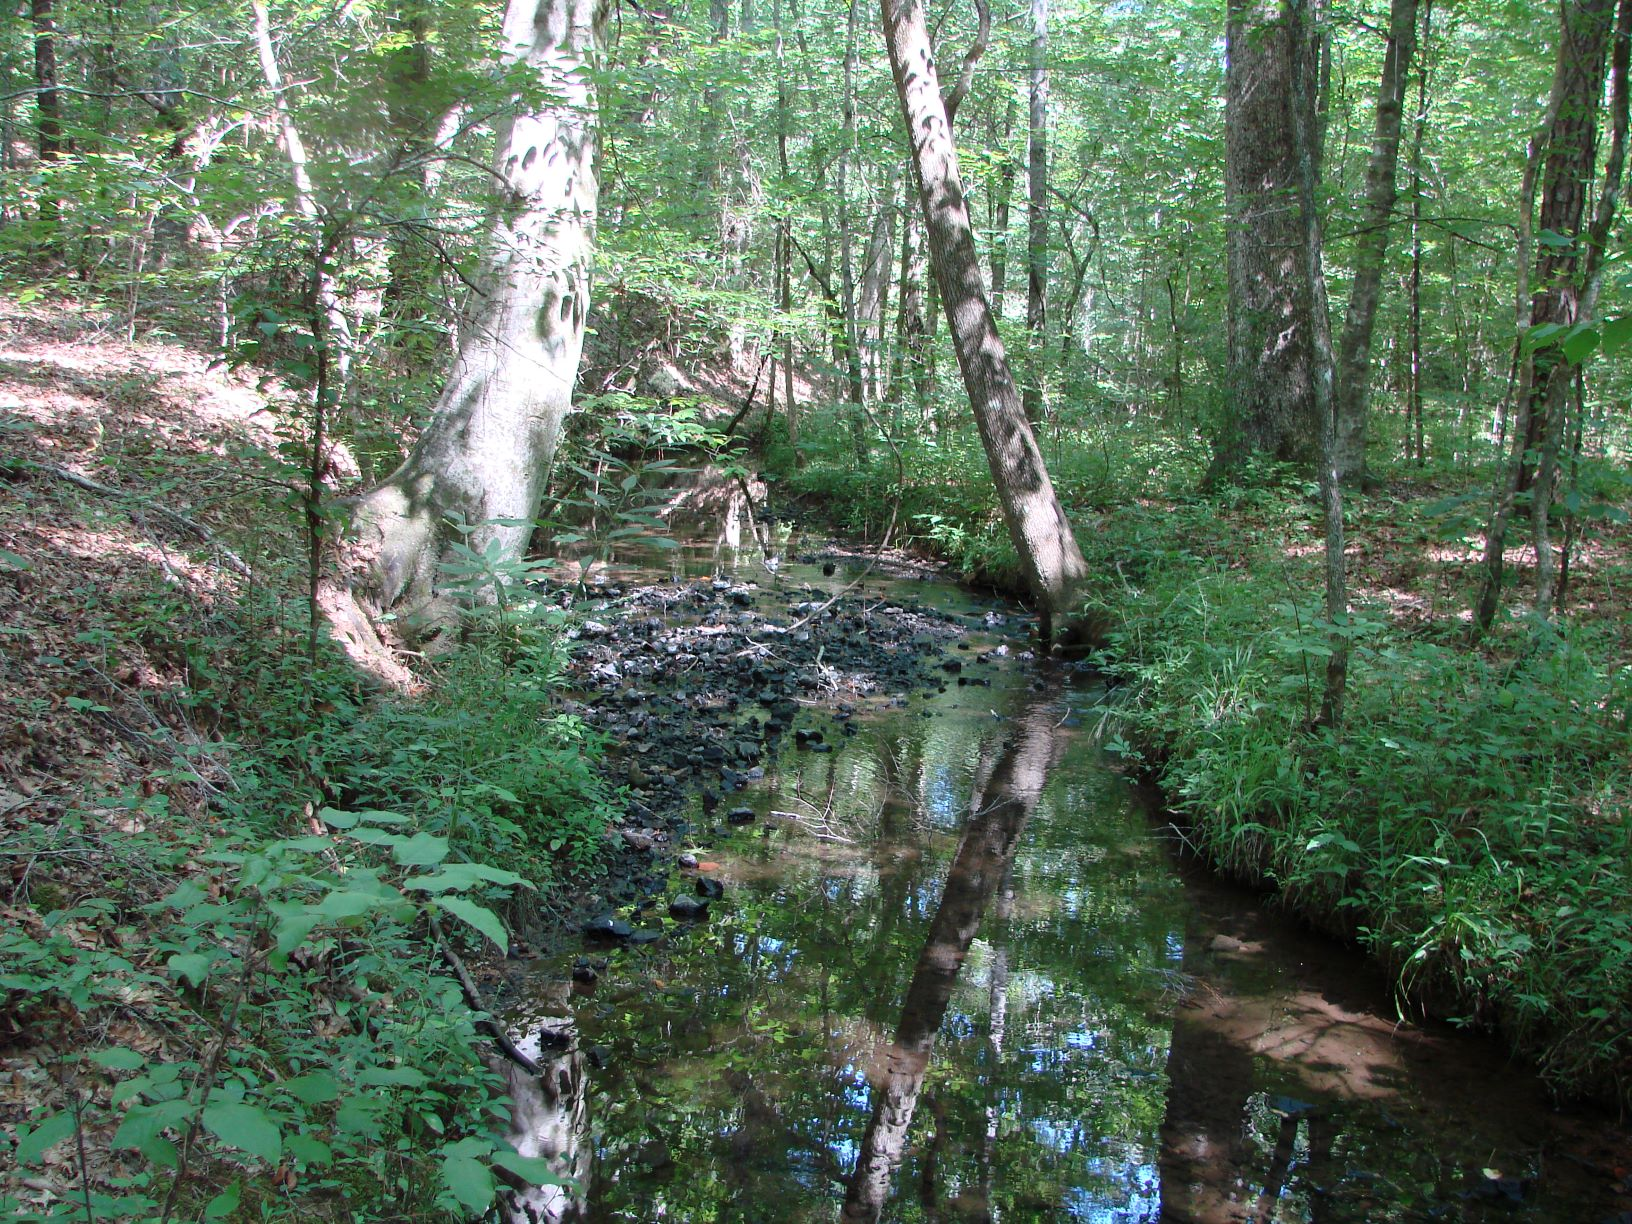 The main creek that crosses the property for about 1/4 mile